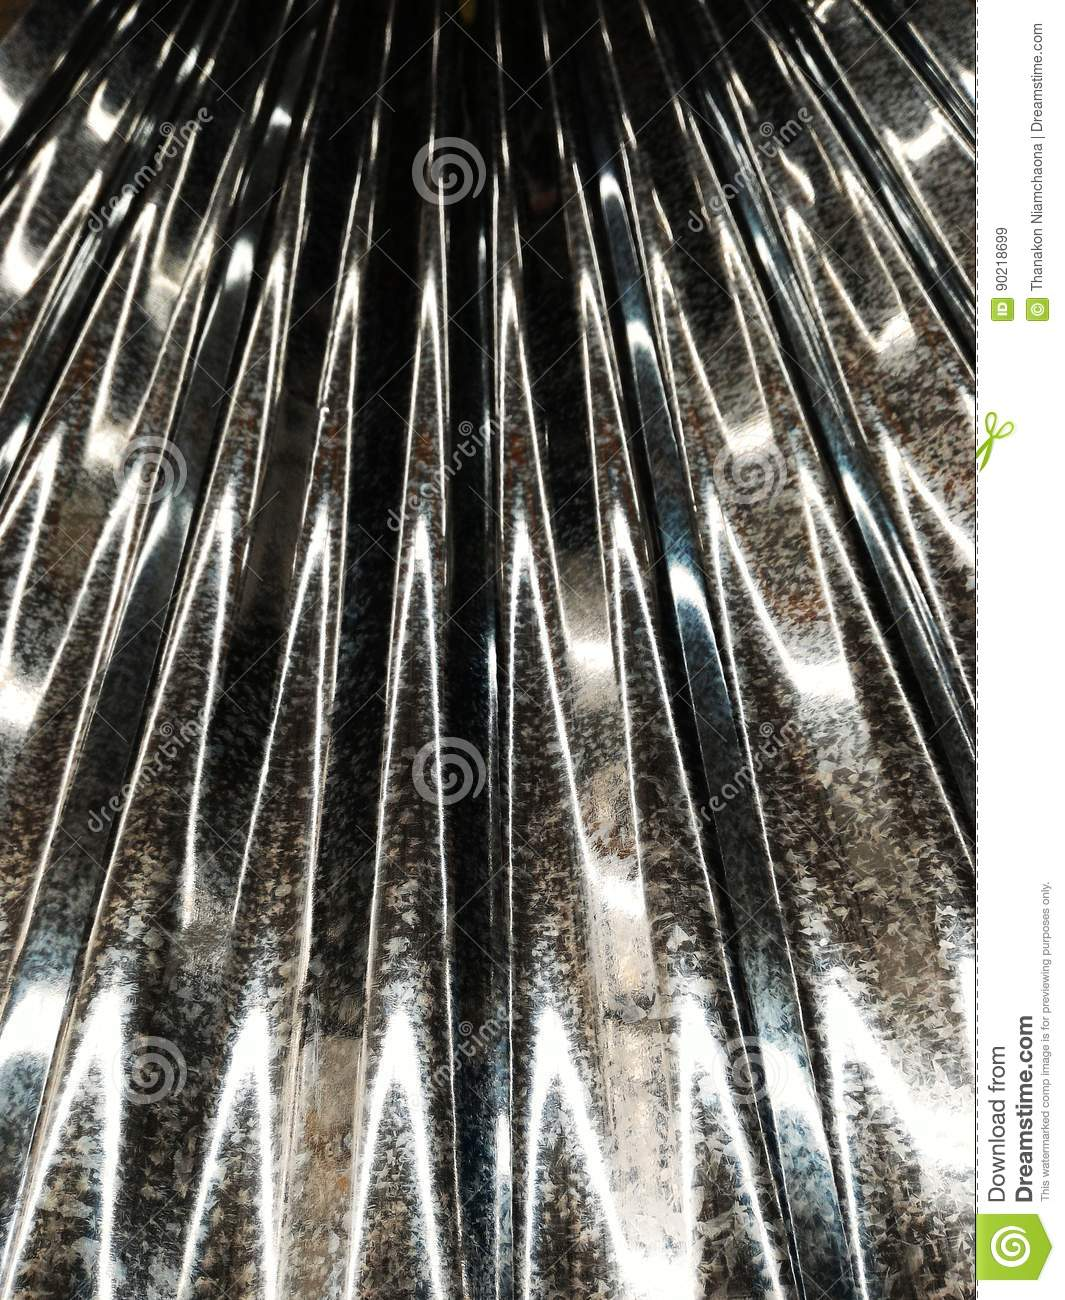 download metal roofing texture stock image image of plate panel 90218699 - Metal Roof Texture